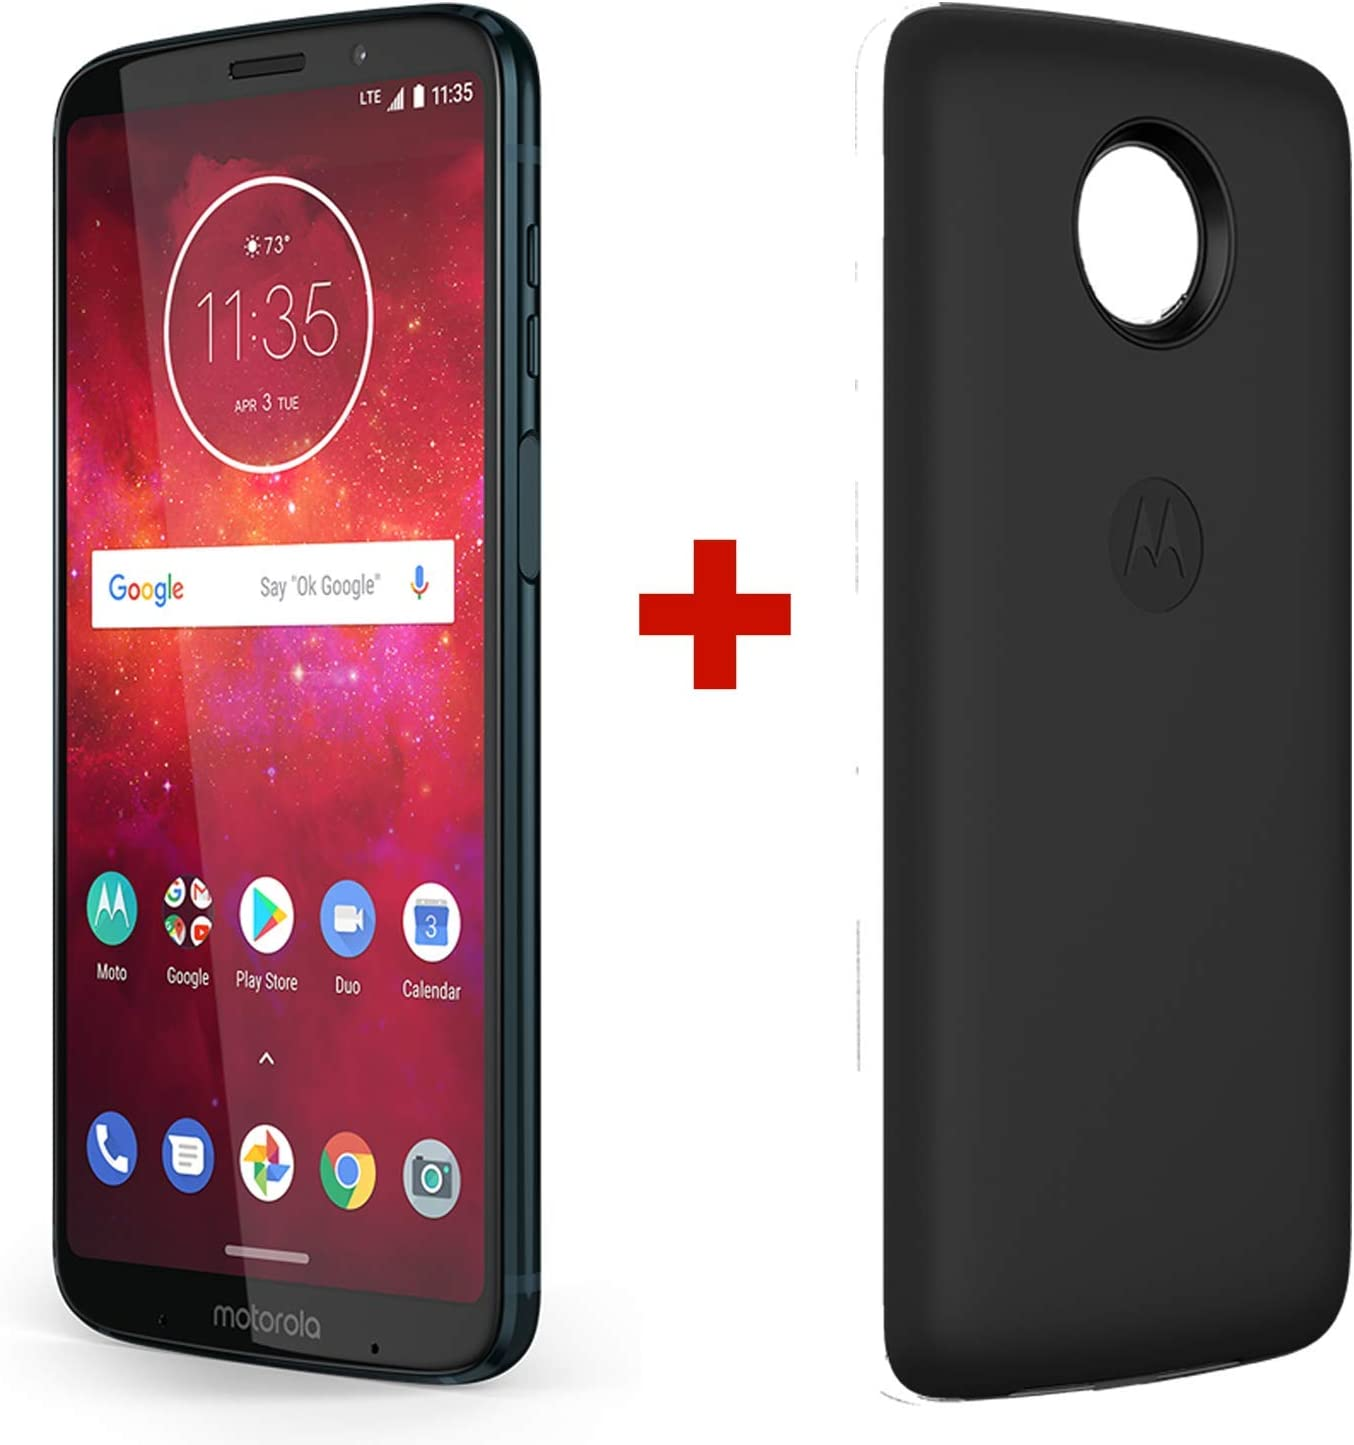 Motorola Z3 Play & Moto Power Pack - Unlocked (AT&T/Sprint/T-Mobile/Verizon) - 64GB - Deep Indigo (US Warranty) - PA9S0000US